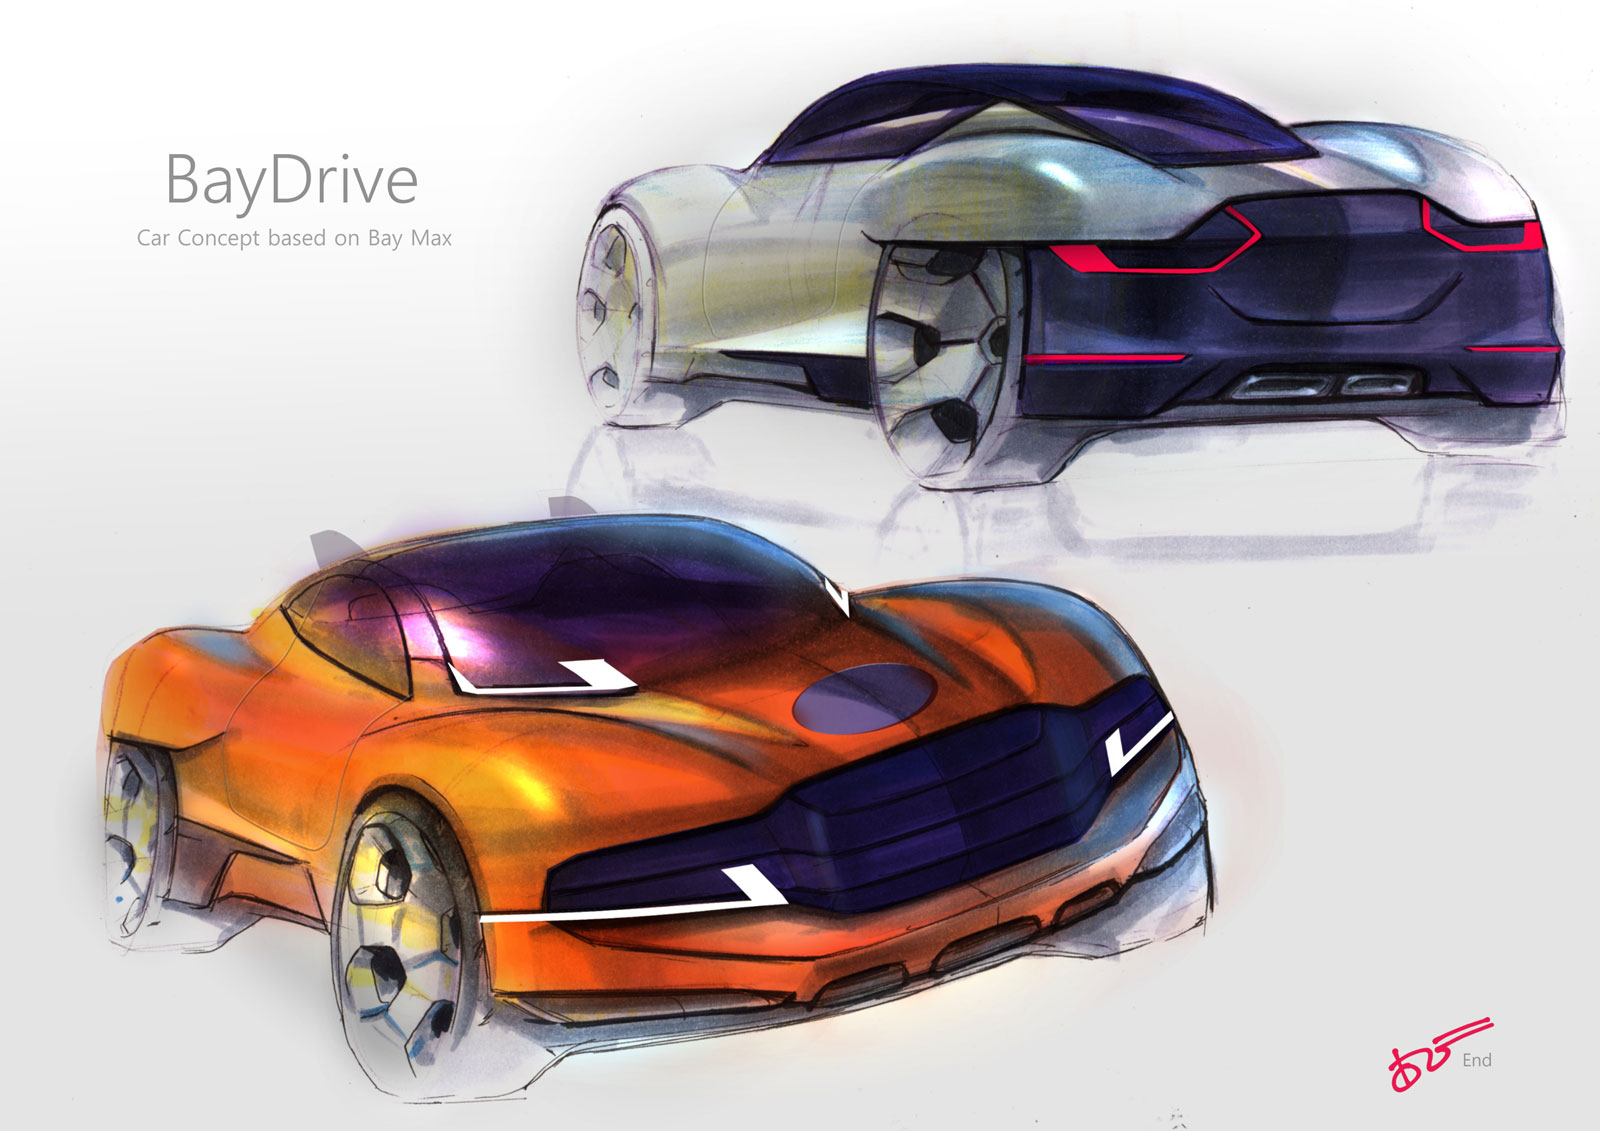 BayDrive Concept Design Sketches by Agri Bisono